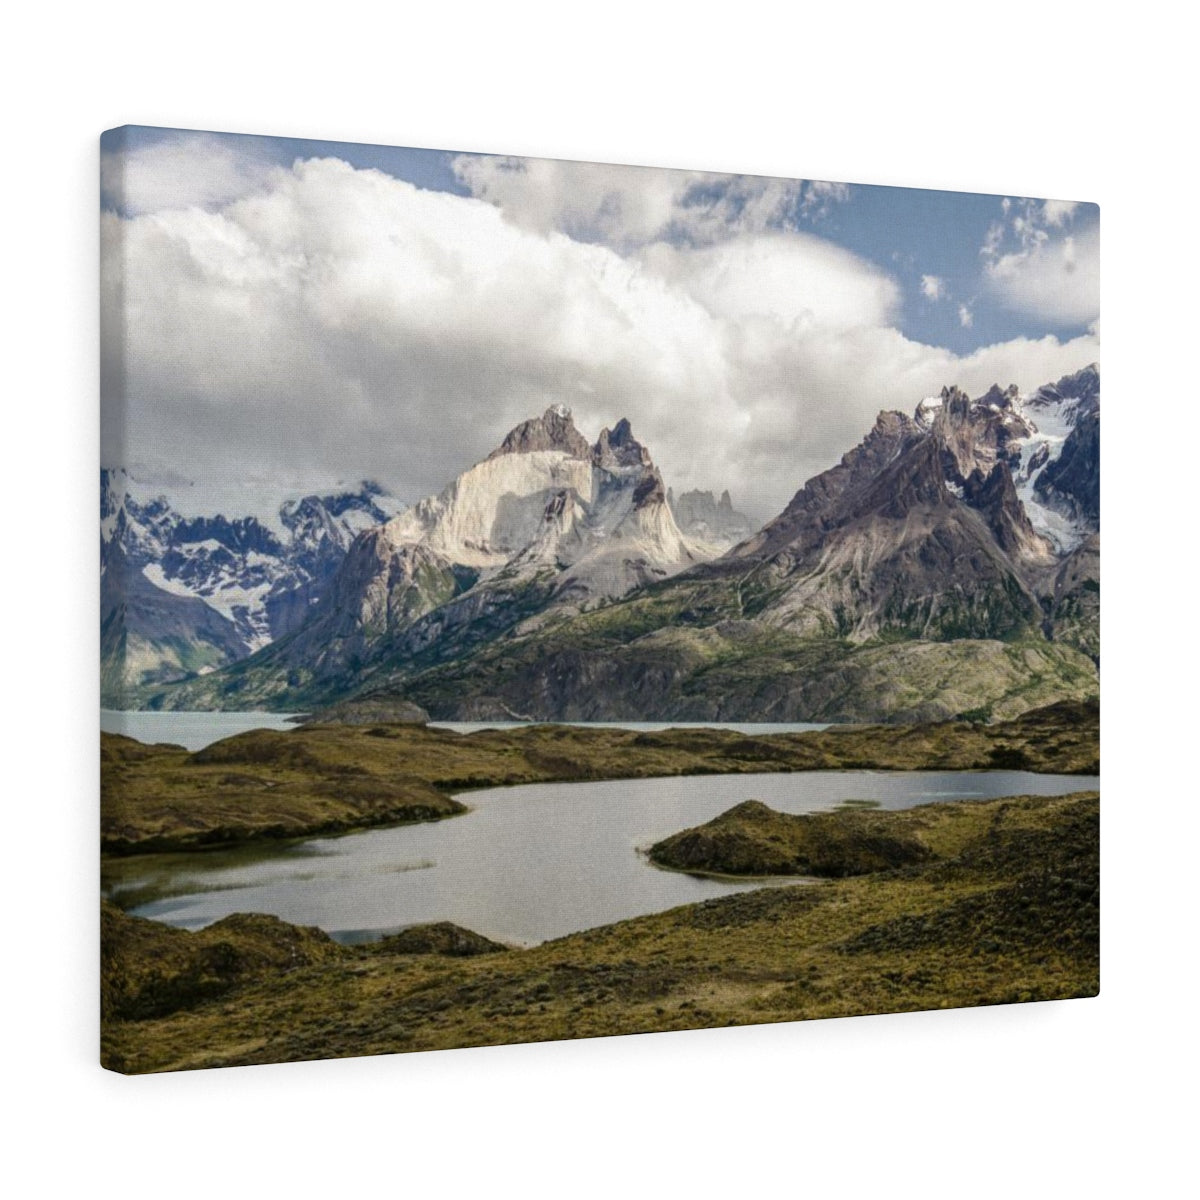 Patagonia Peak - Canvas